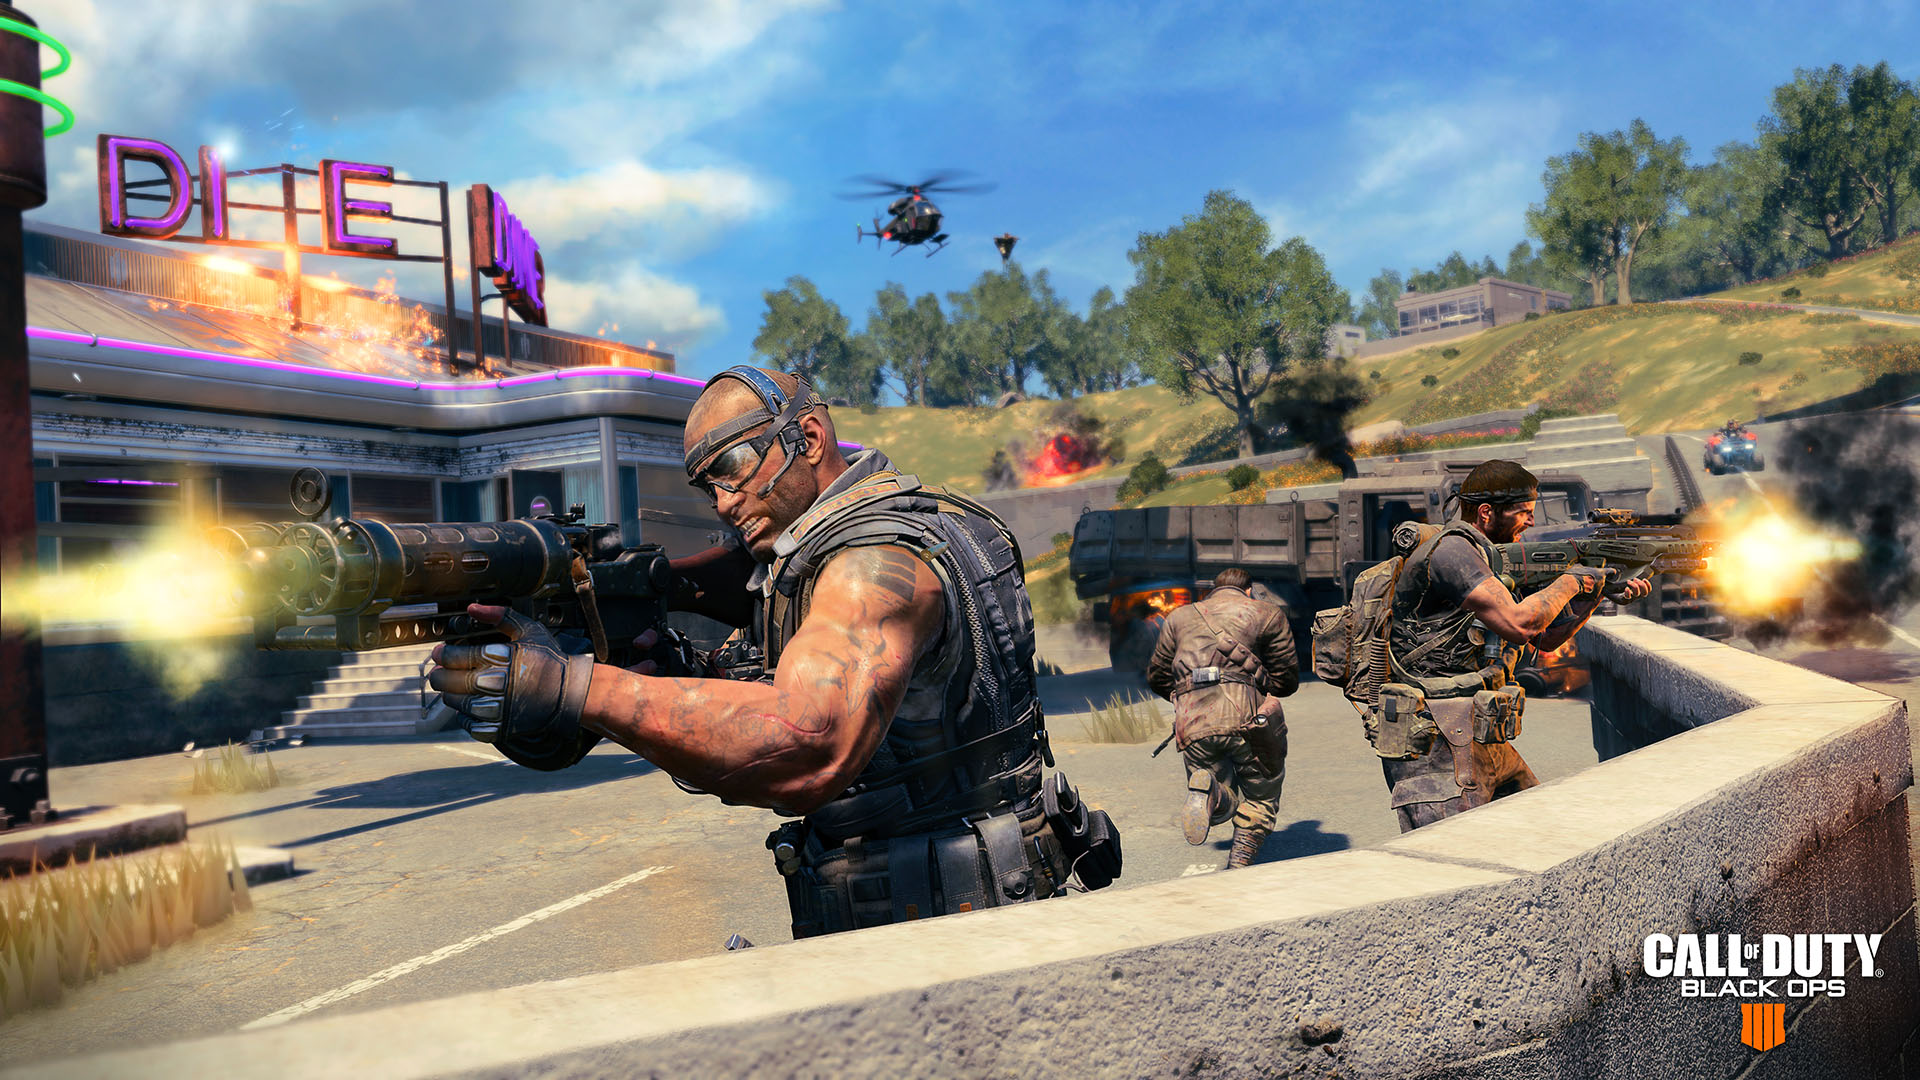 Call of Duty: Black Ops 4 Blackout maps